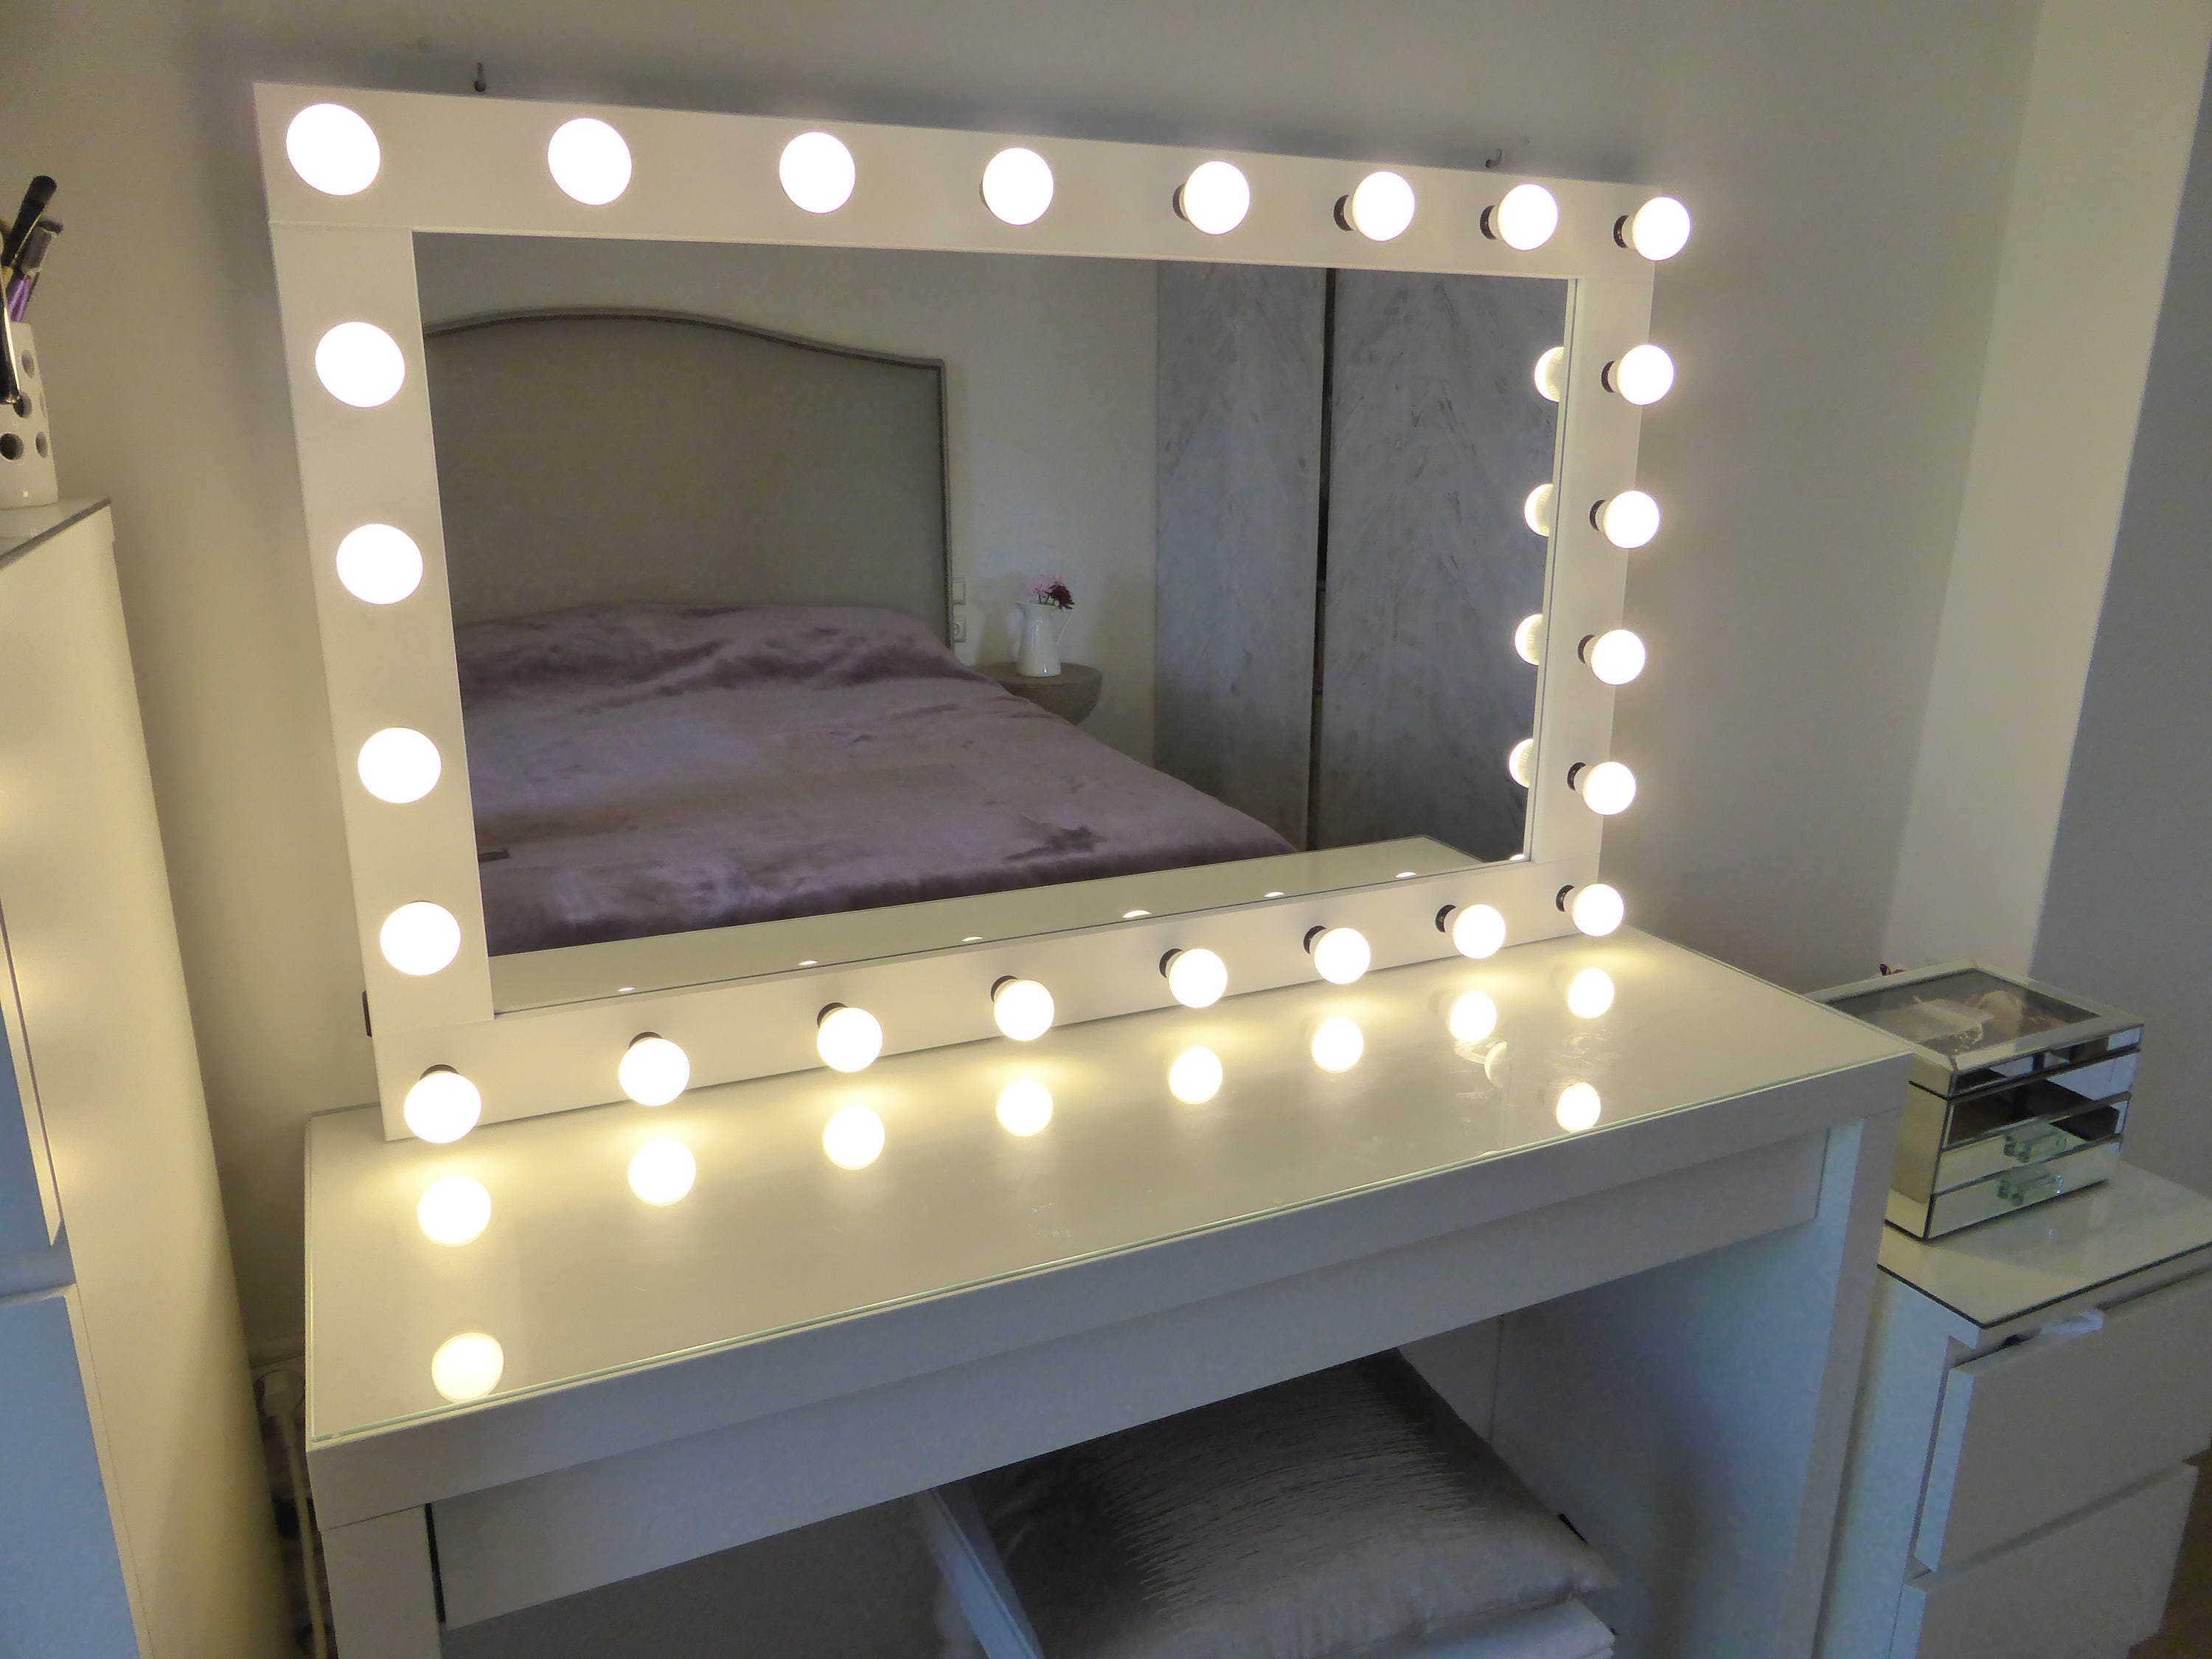 XL Hollywood vanity mirror 43x27'' makeup mirror